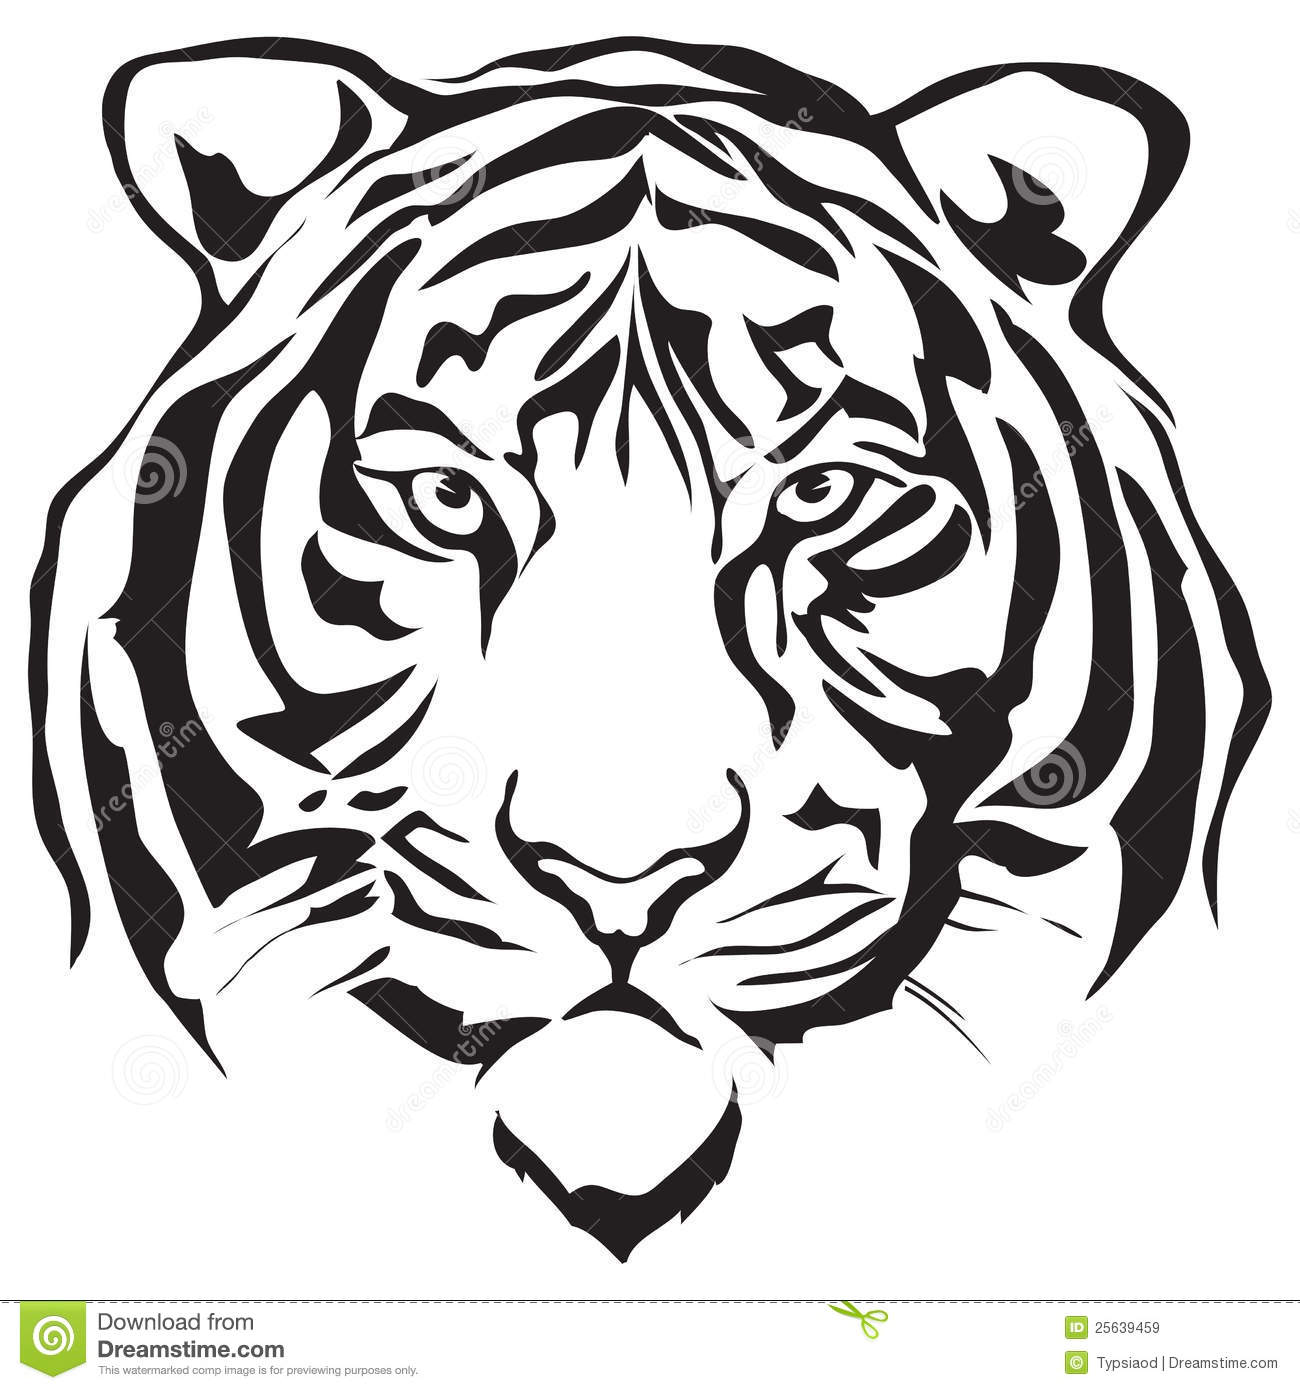 Tiiger clipart tiger face #5